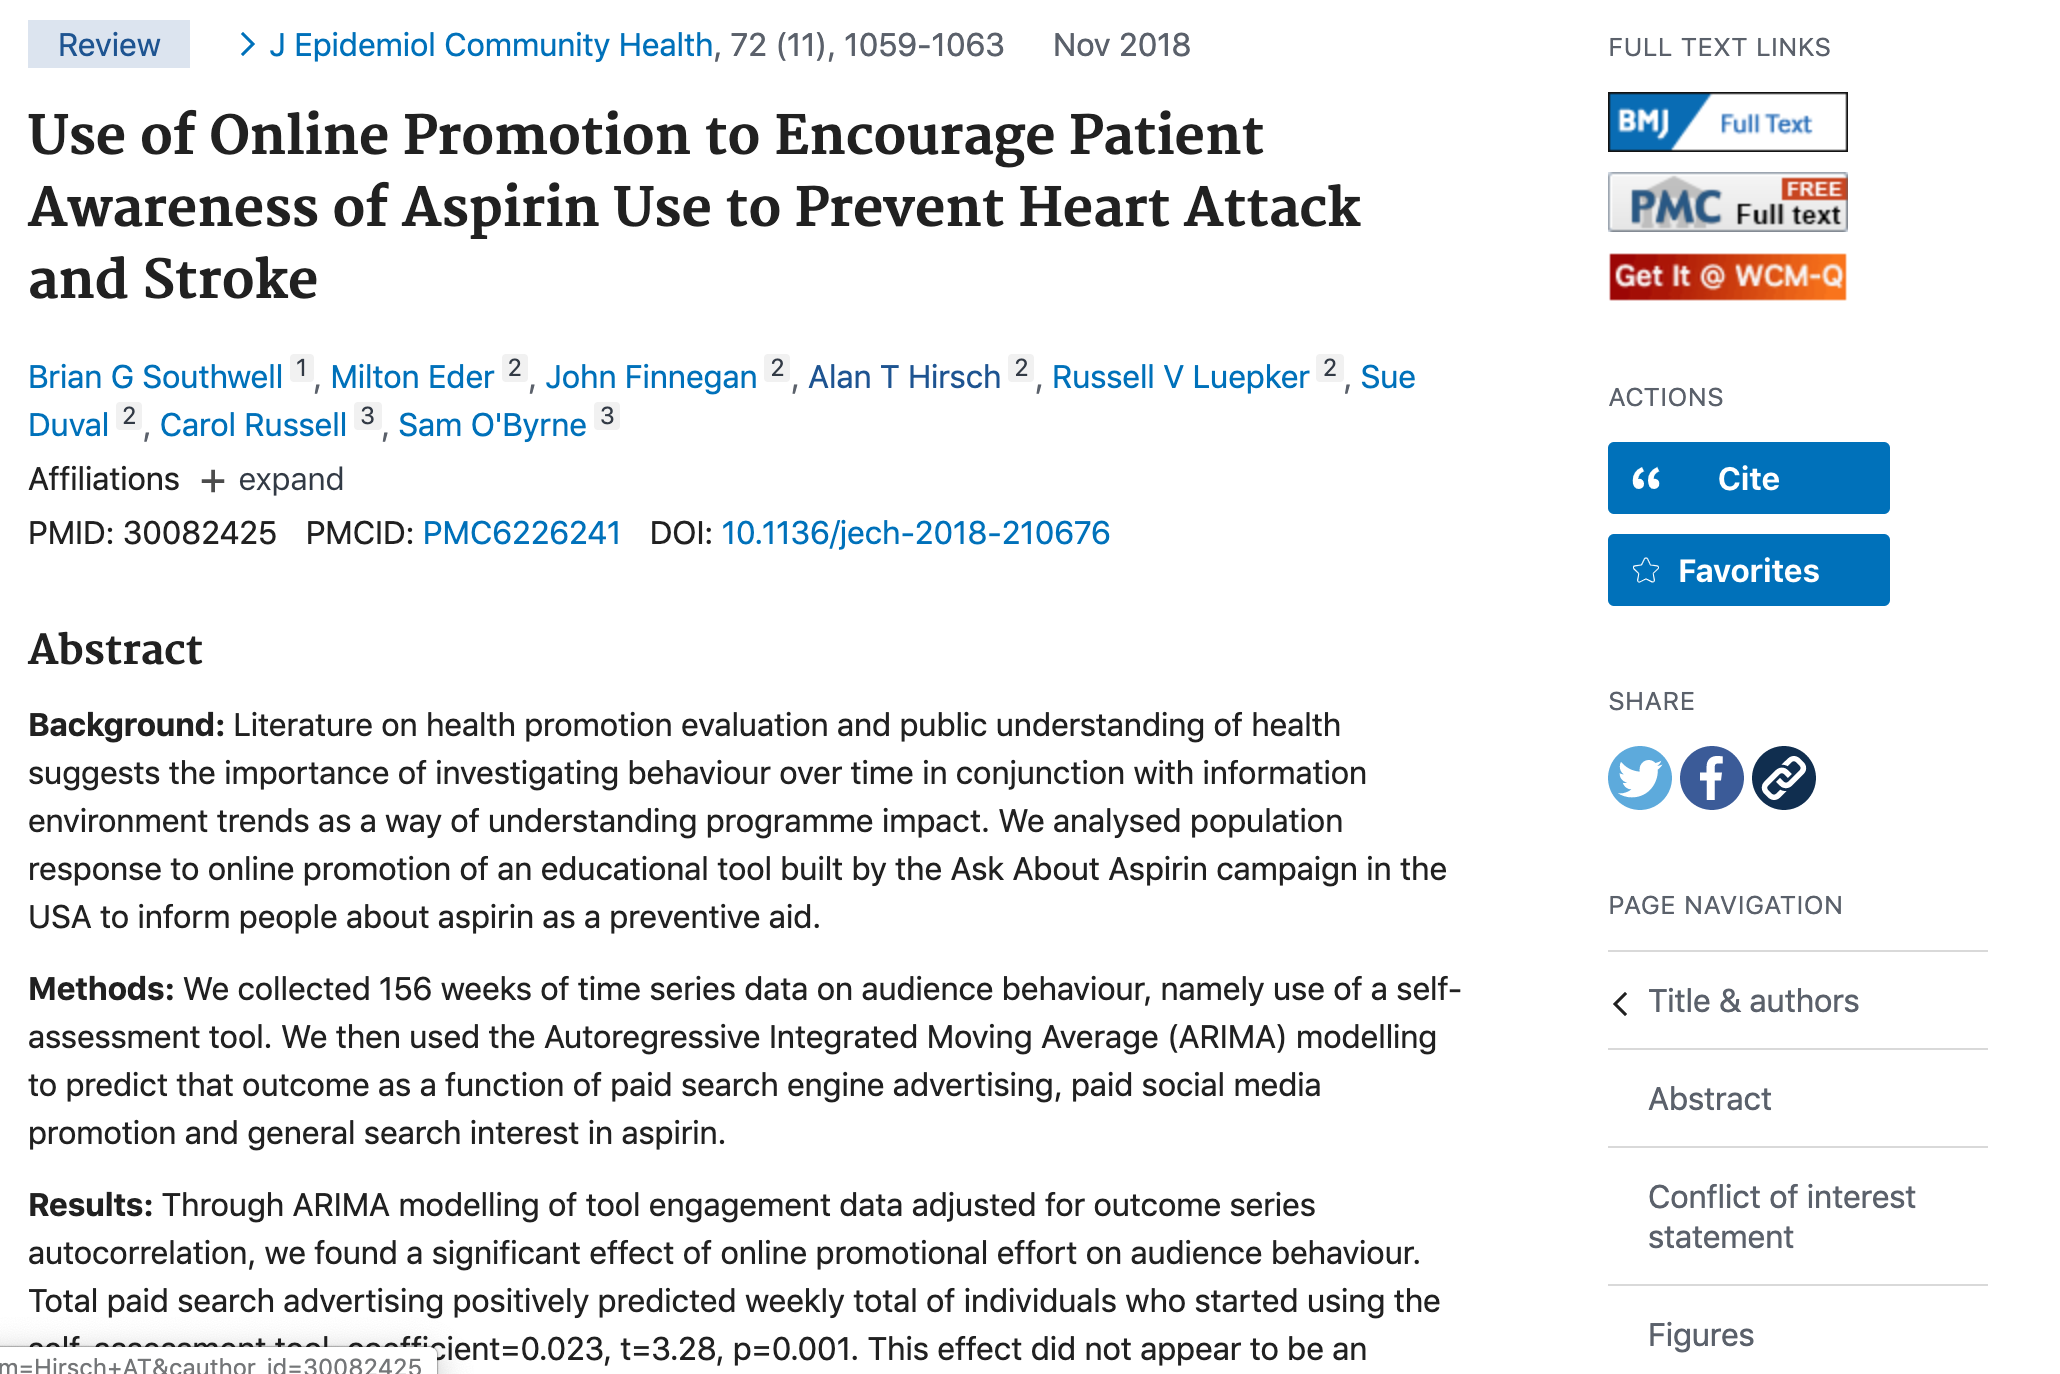 Article in PubMed